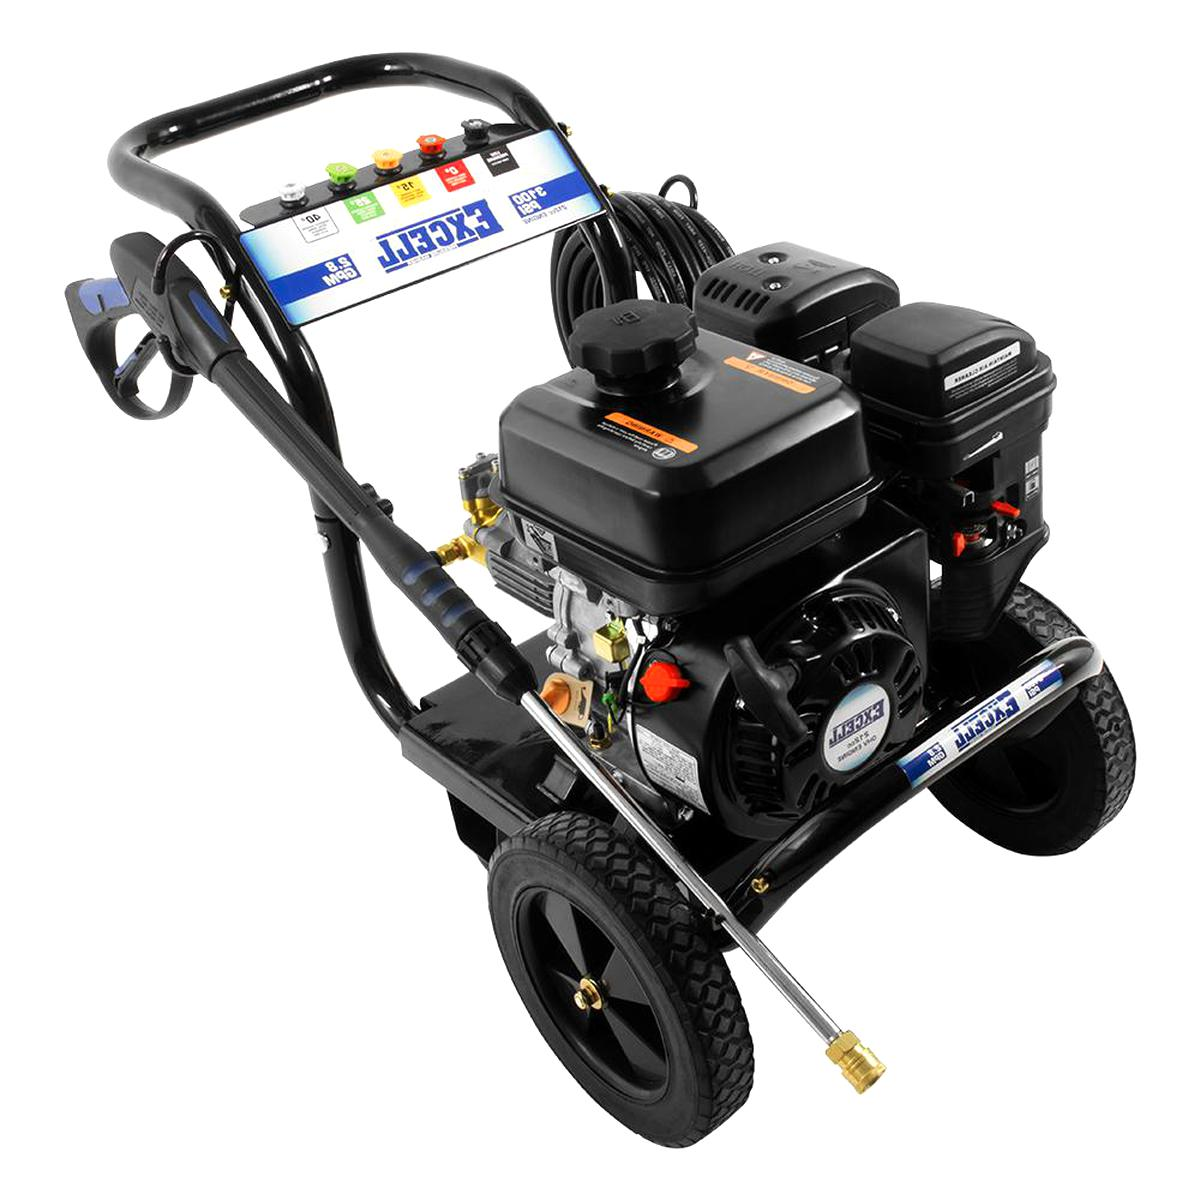 Excell Pressure Washer For Sale Only 4 Left At 75